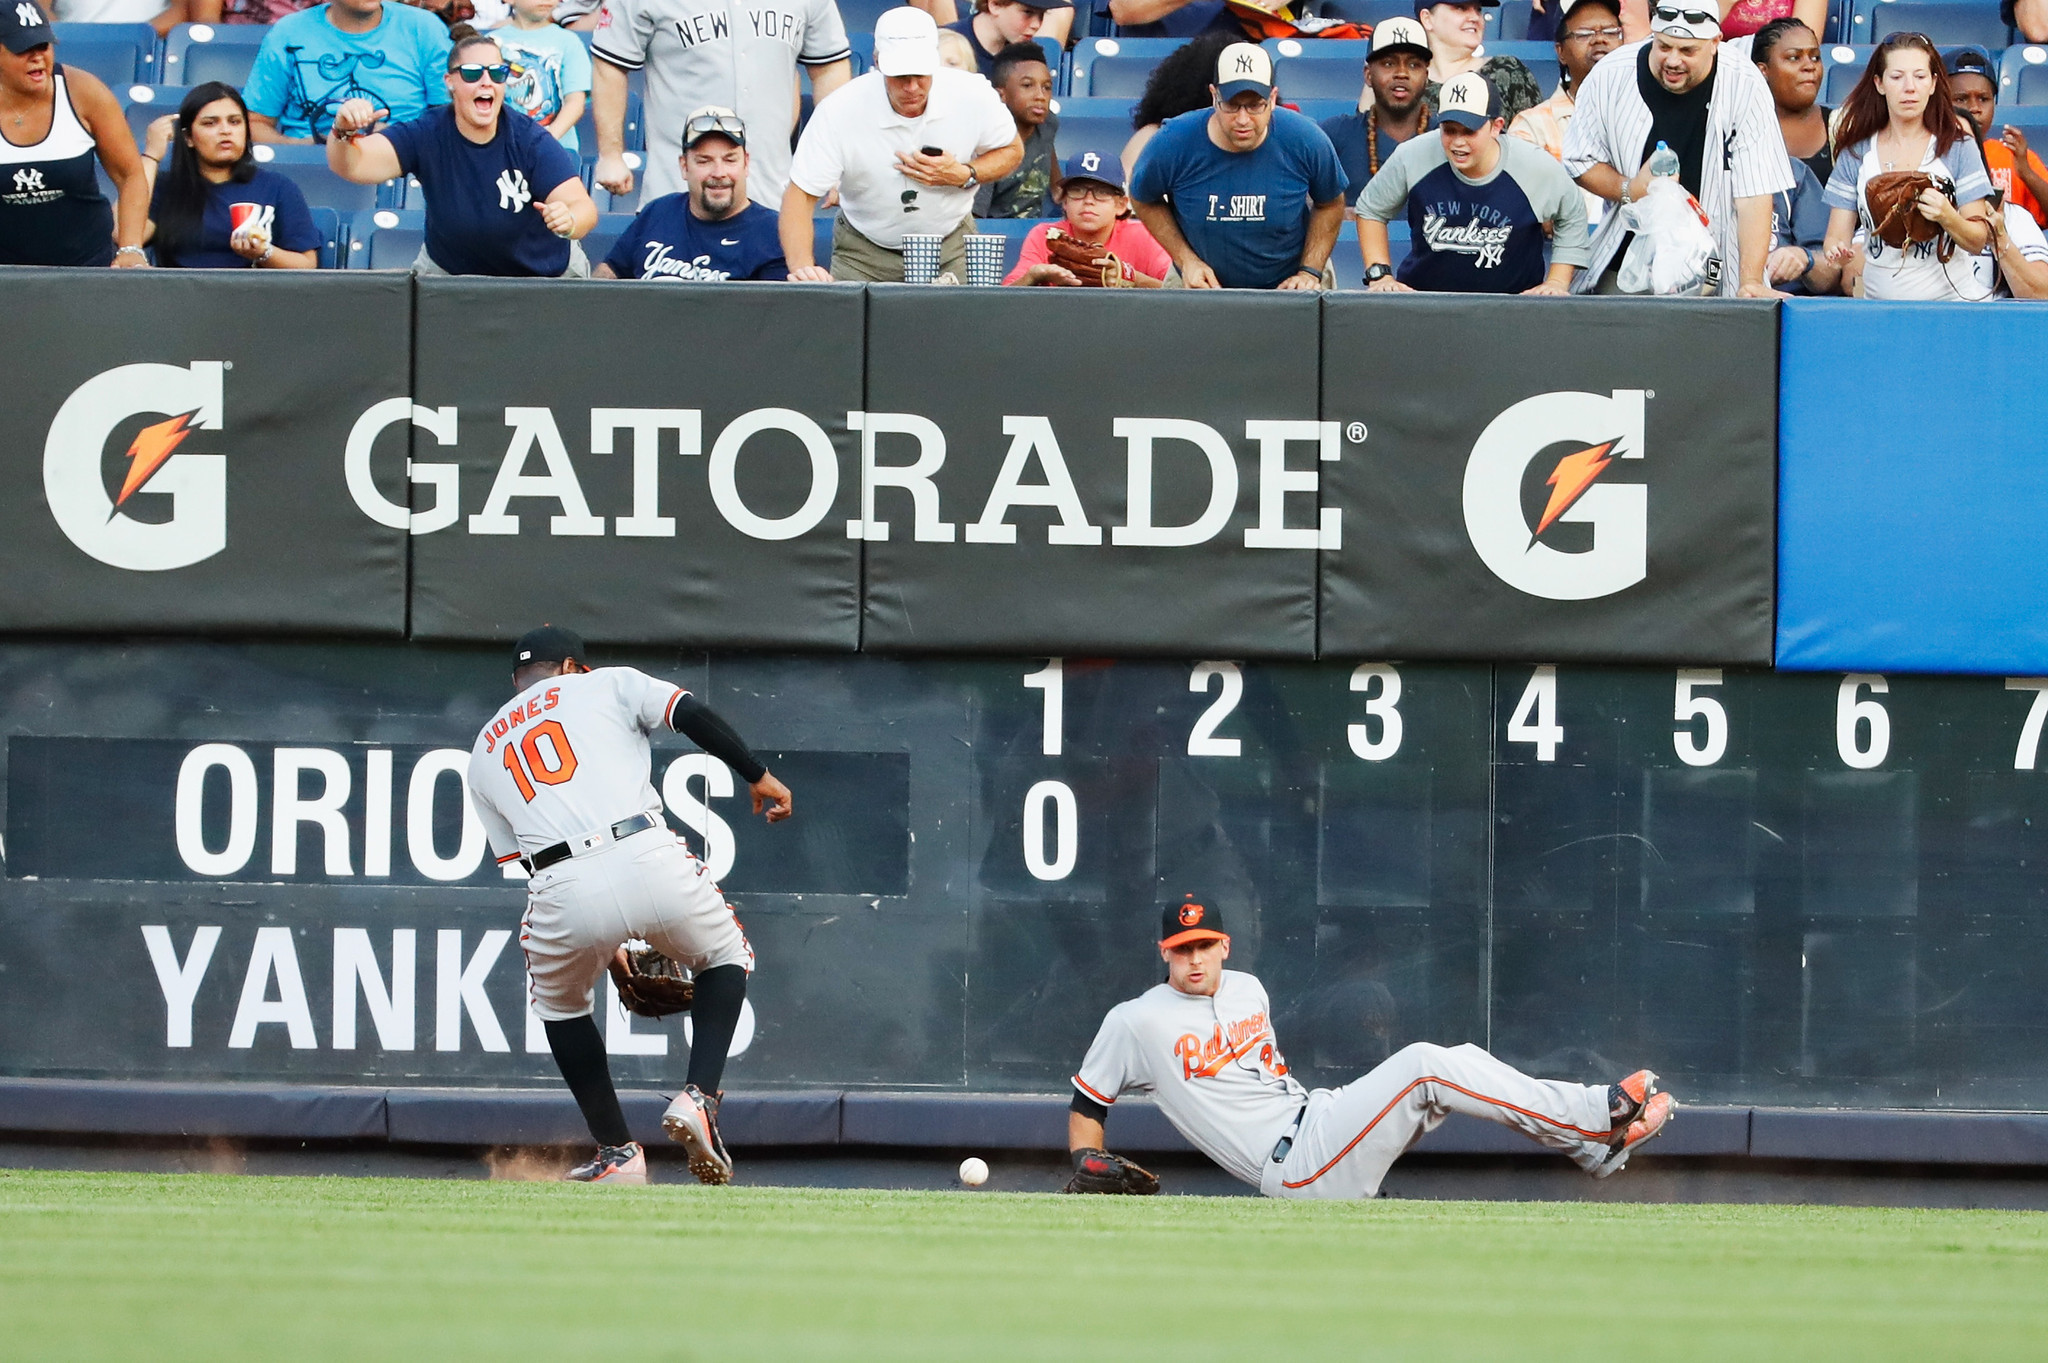 Bal-orioles-on-deck-adam-jones-and-joey-rickard-out-plus-what-to-watch-thursday-at-yankees-20160721